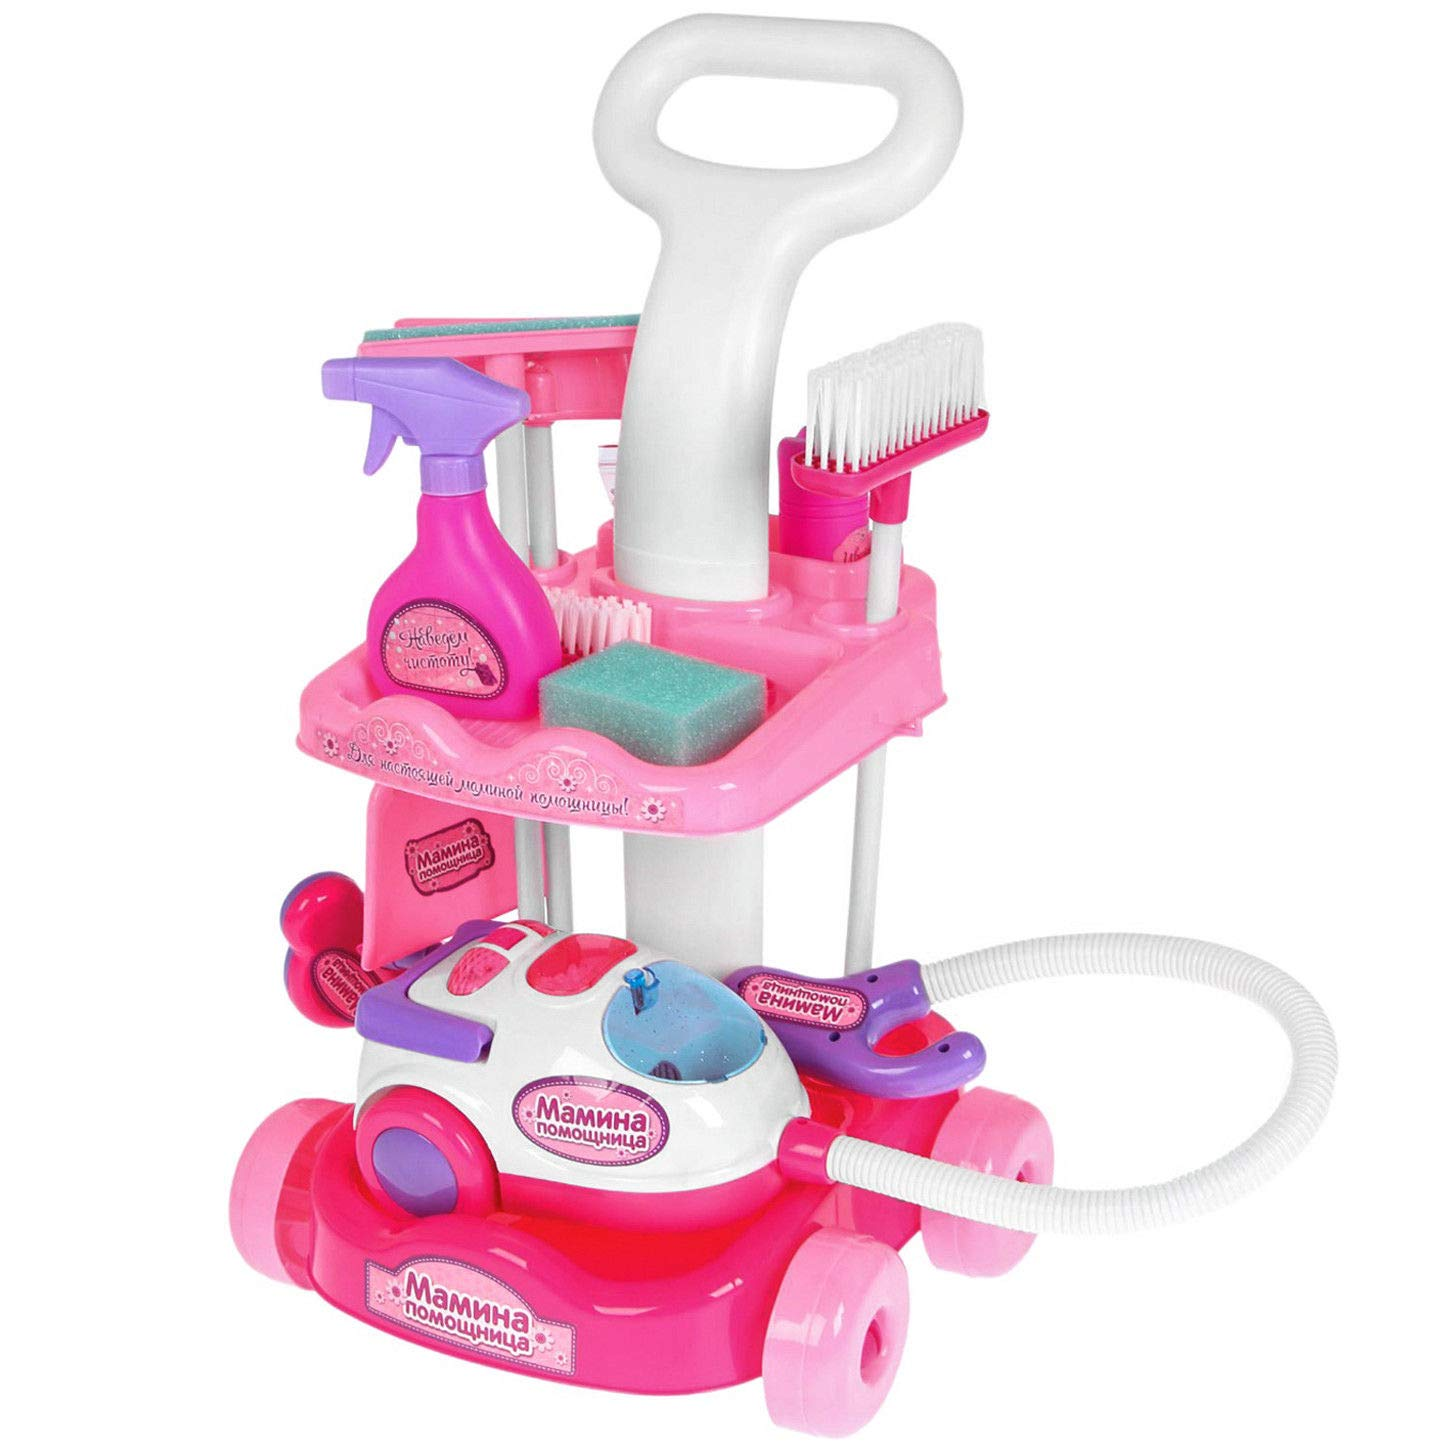 BARGAINS-GALORE GIRLS HOUSEHOLD VACUUM CLEANING TROLLEY TOY SET & BROOM CLEANER ACCESSORIES NEW NT